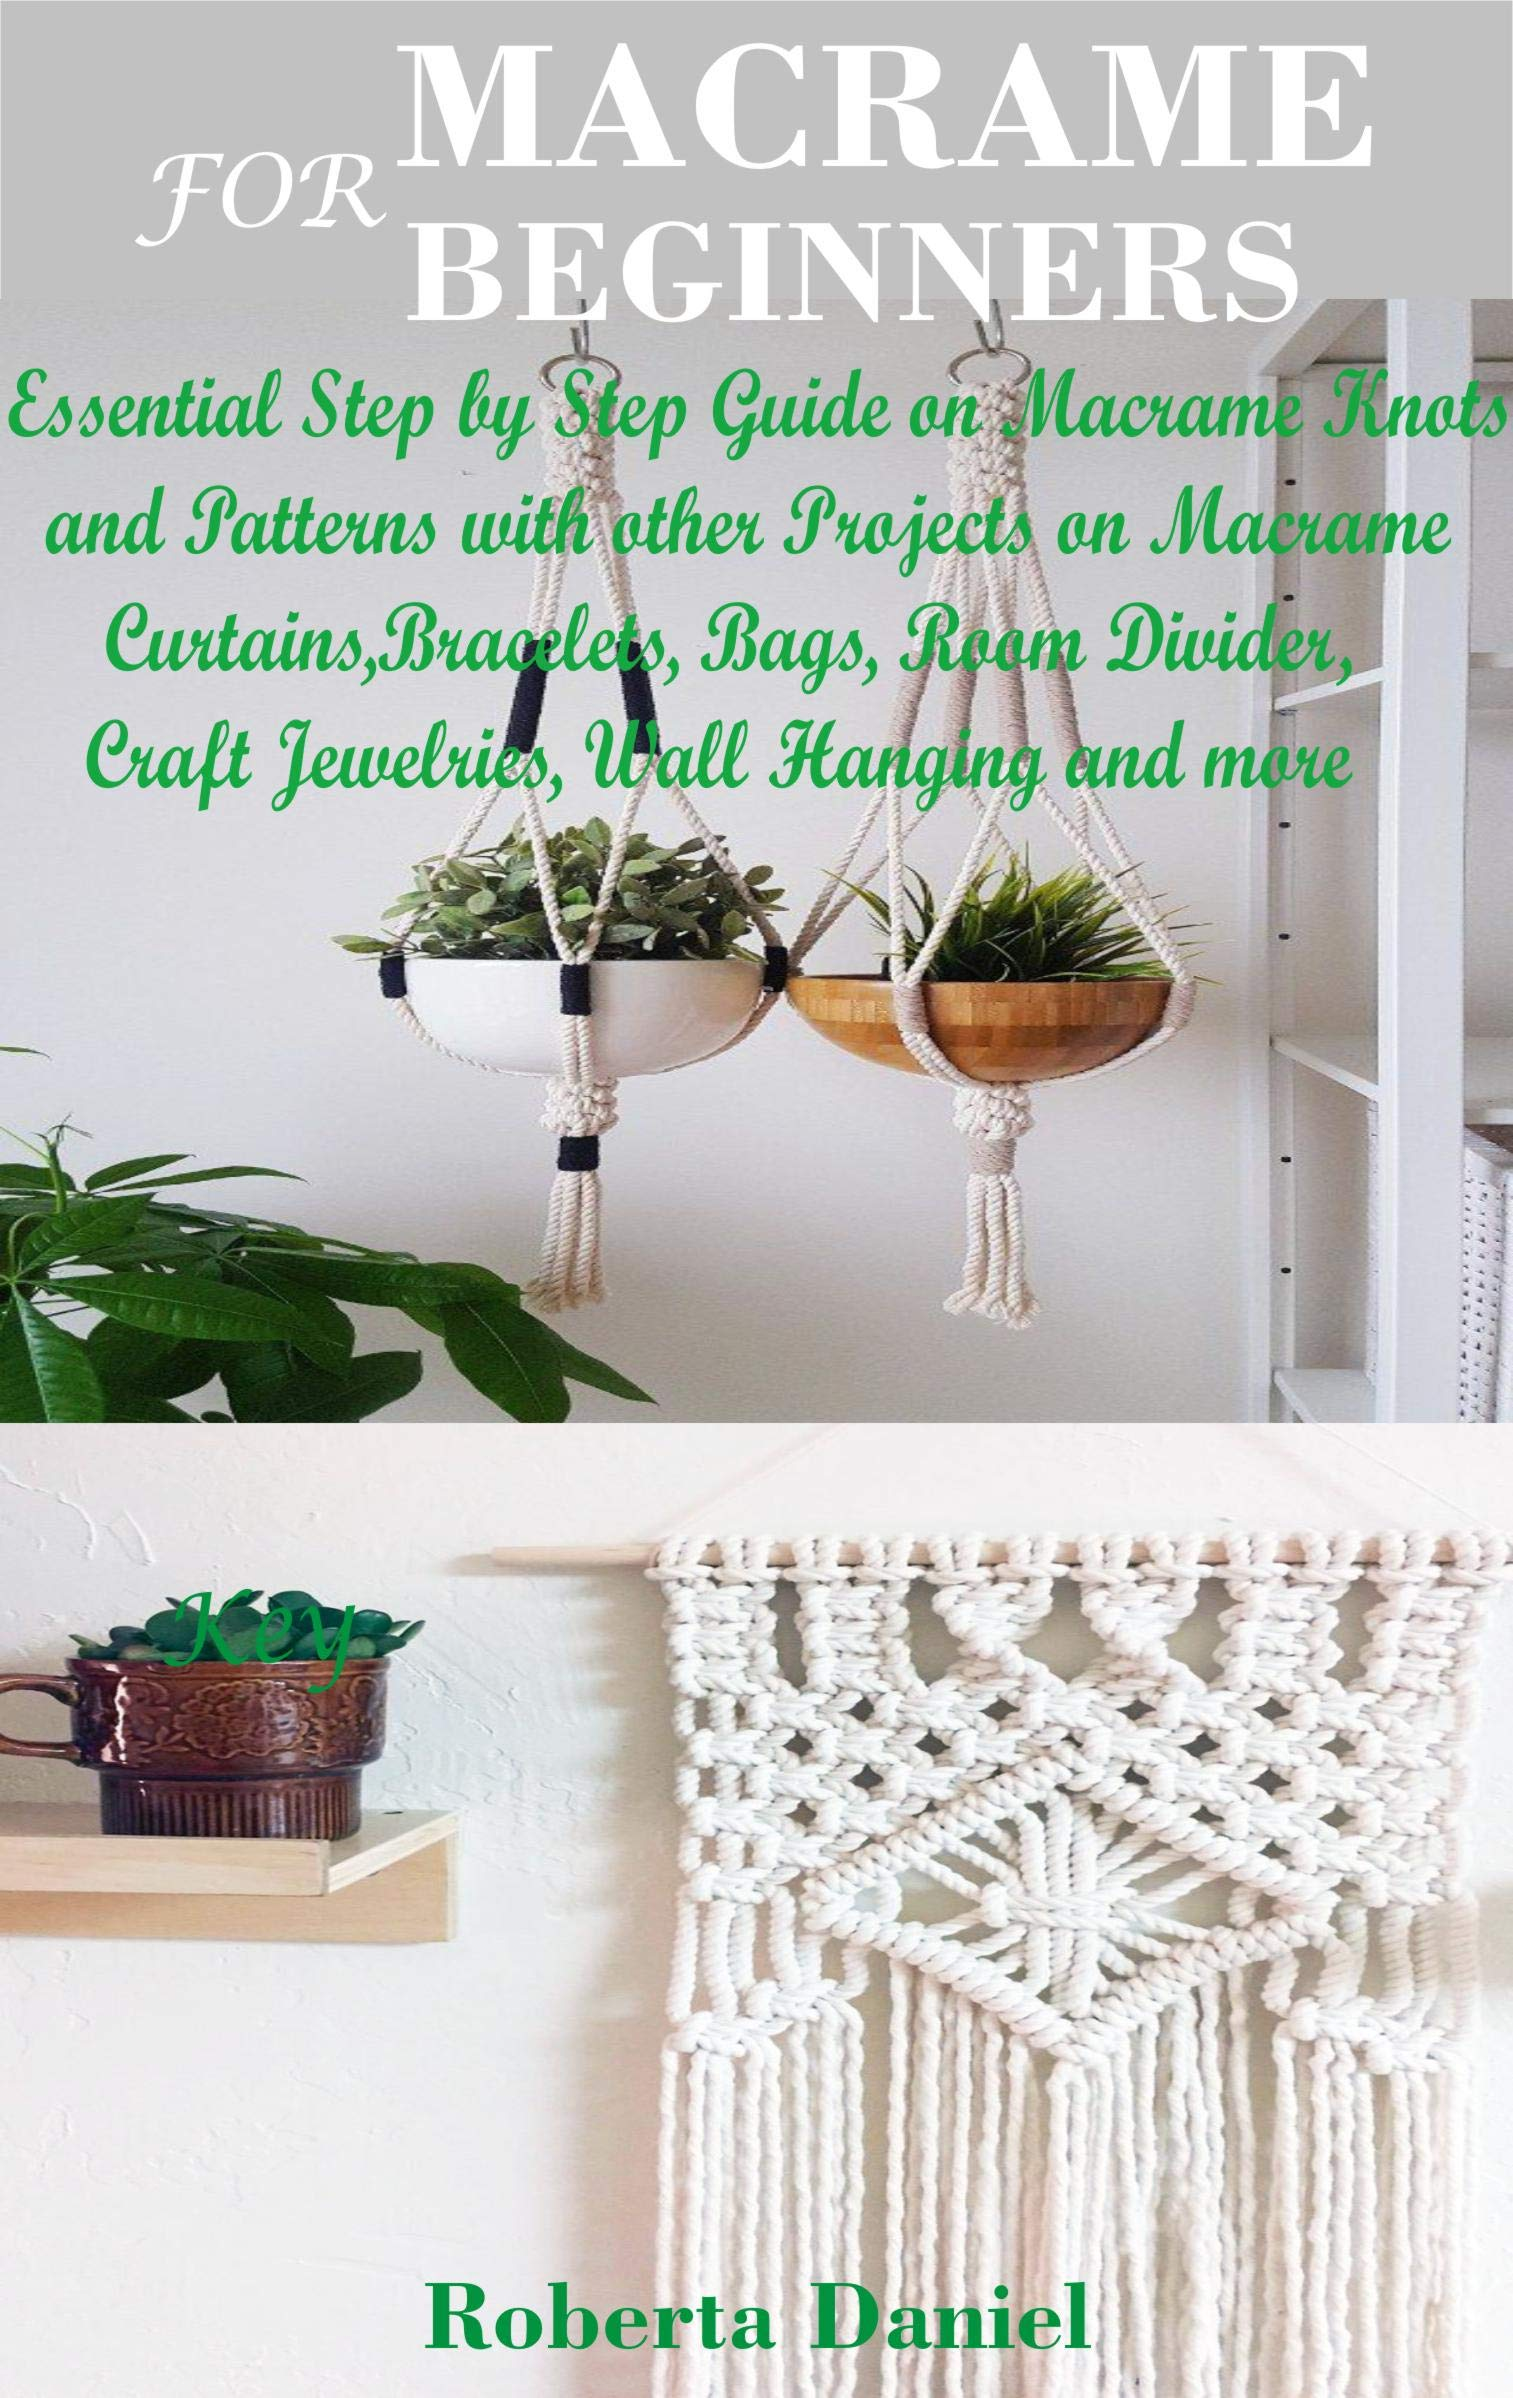 MACRAME FOR BEGINNERS: Essential Step by Step Guide on Macramé Knots and Patterns with other Projects on Macramé Curtains, Wall Hanging, Room Divider, Jewelries, Bags, Bracelets and more